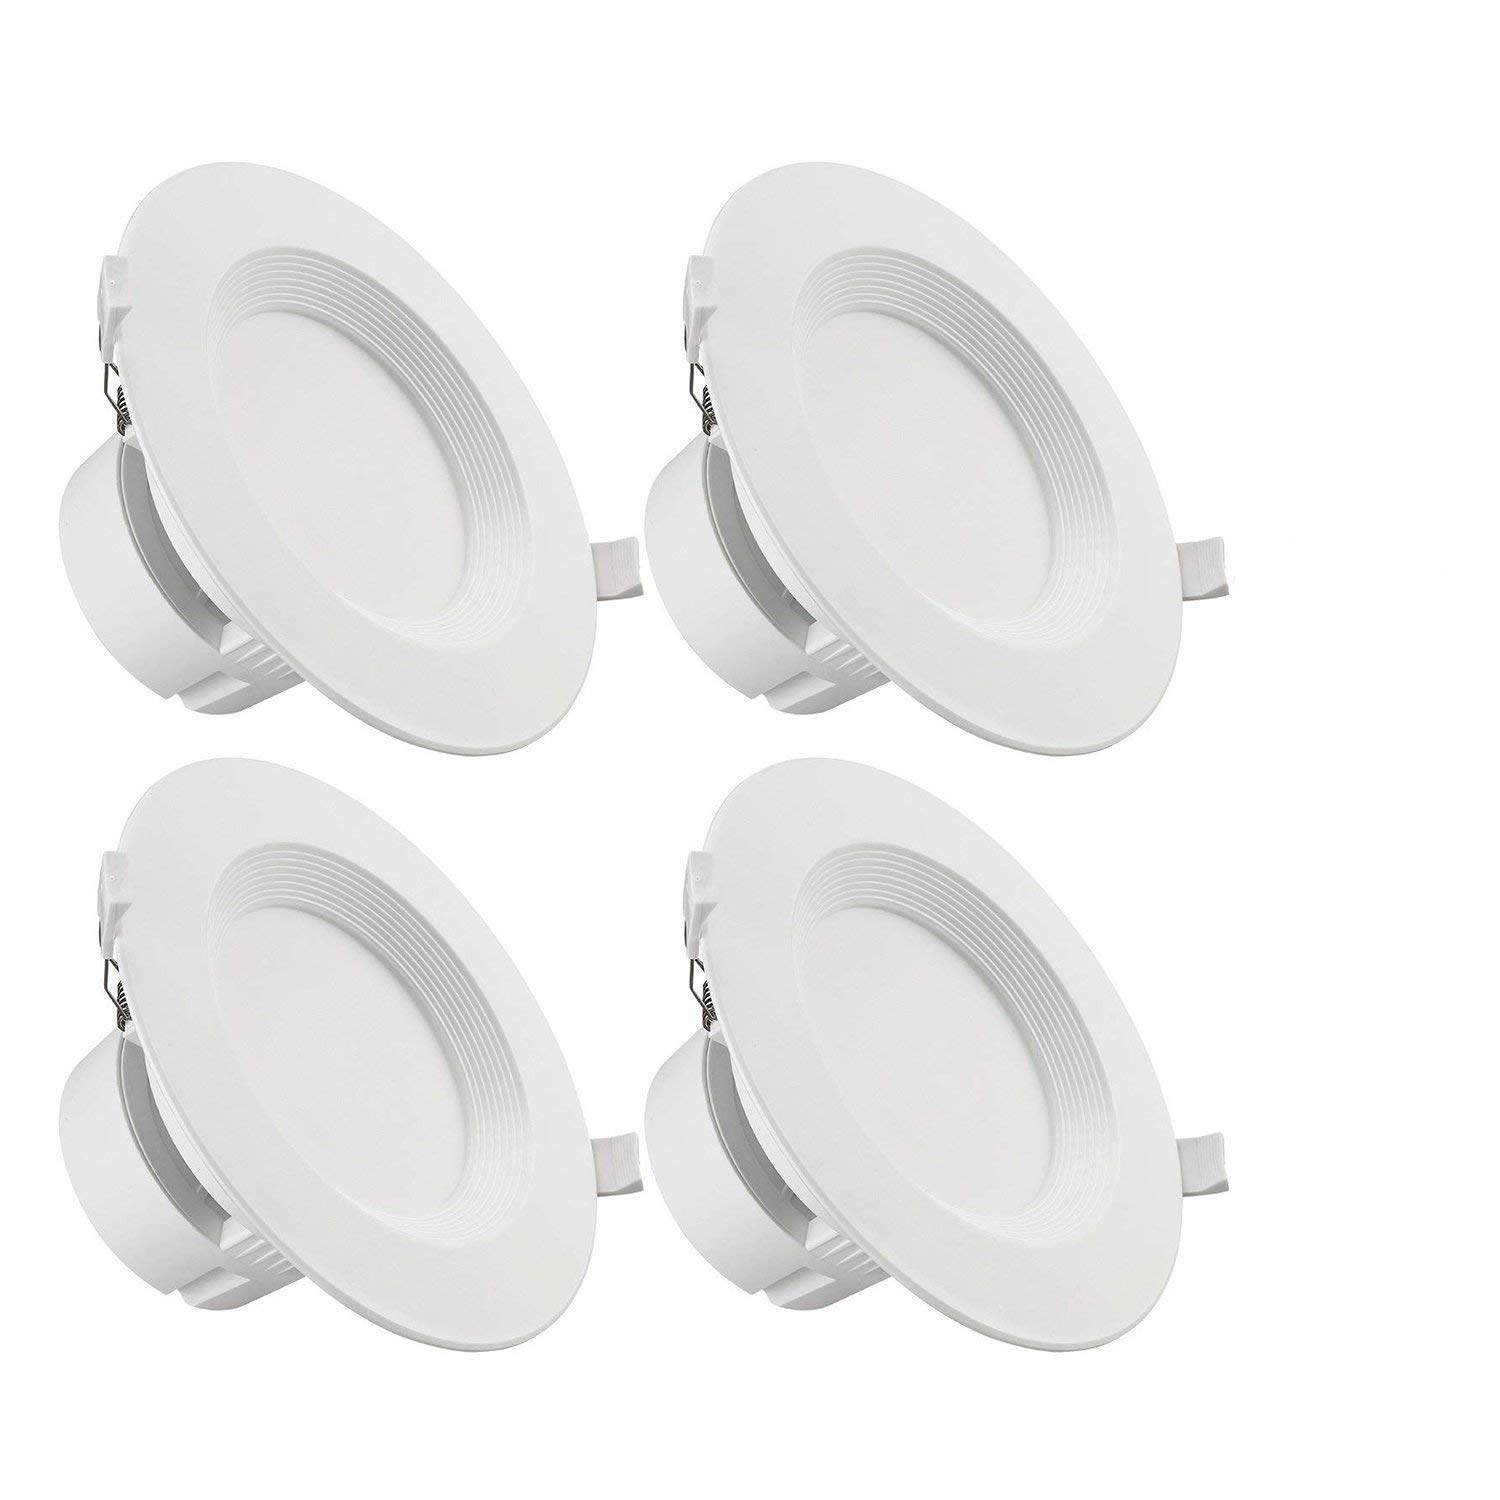 TORCHSTAR 4 PACK 6'' LED Recessed Downlight with Junction Box, 9W (80W Equivalent) Dimmable LED Ceiling Light Fixture, IC-Rated & Air Tight, Wet Location, 5000K Daylight, UL-listed, 5 Years Warranty by TORCHSTAR